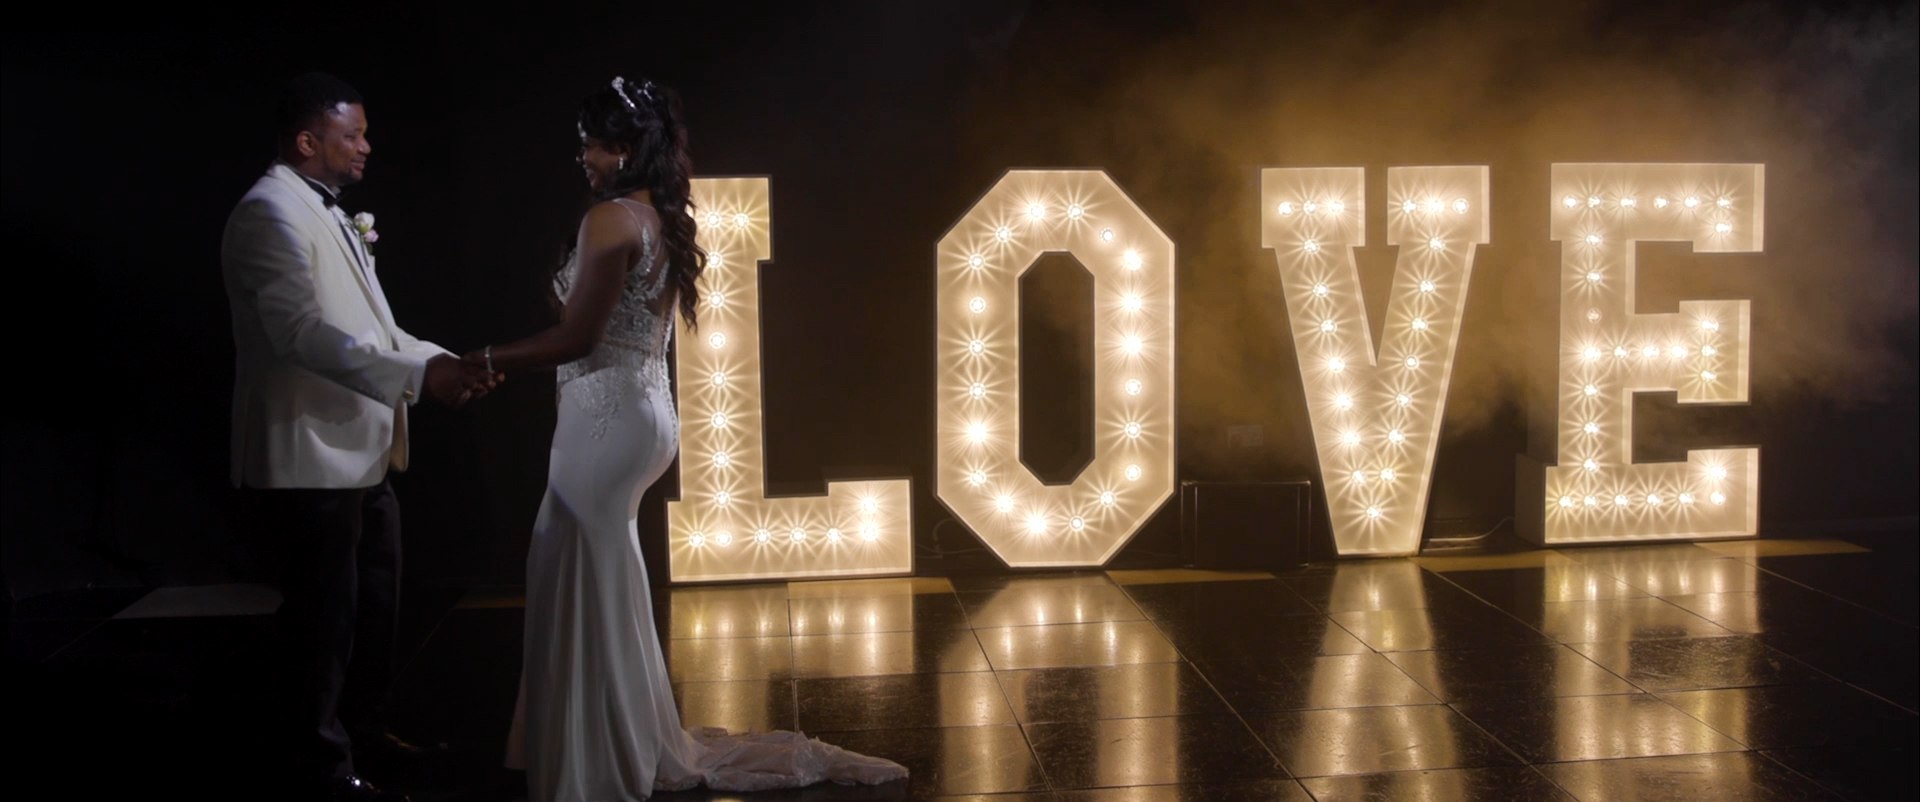 oldwalls wedding love sign